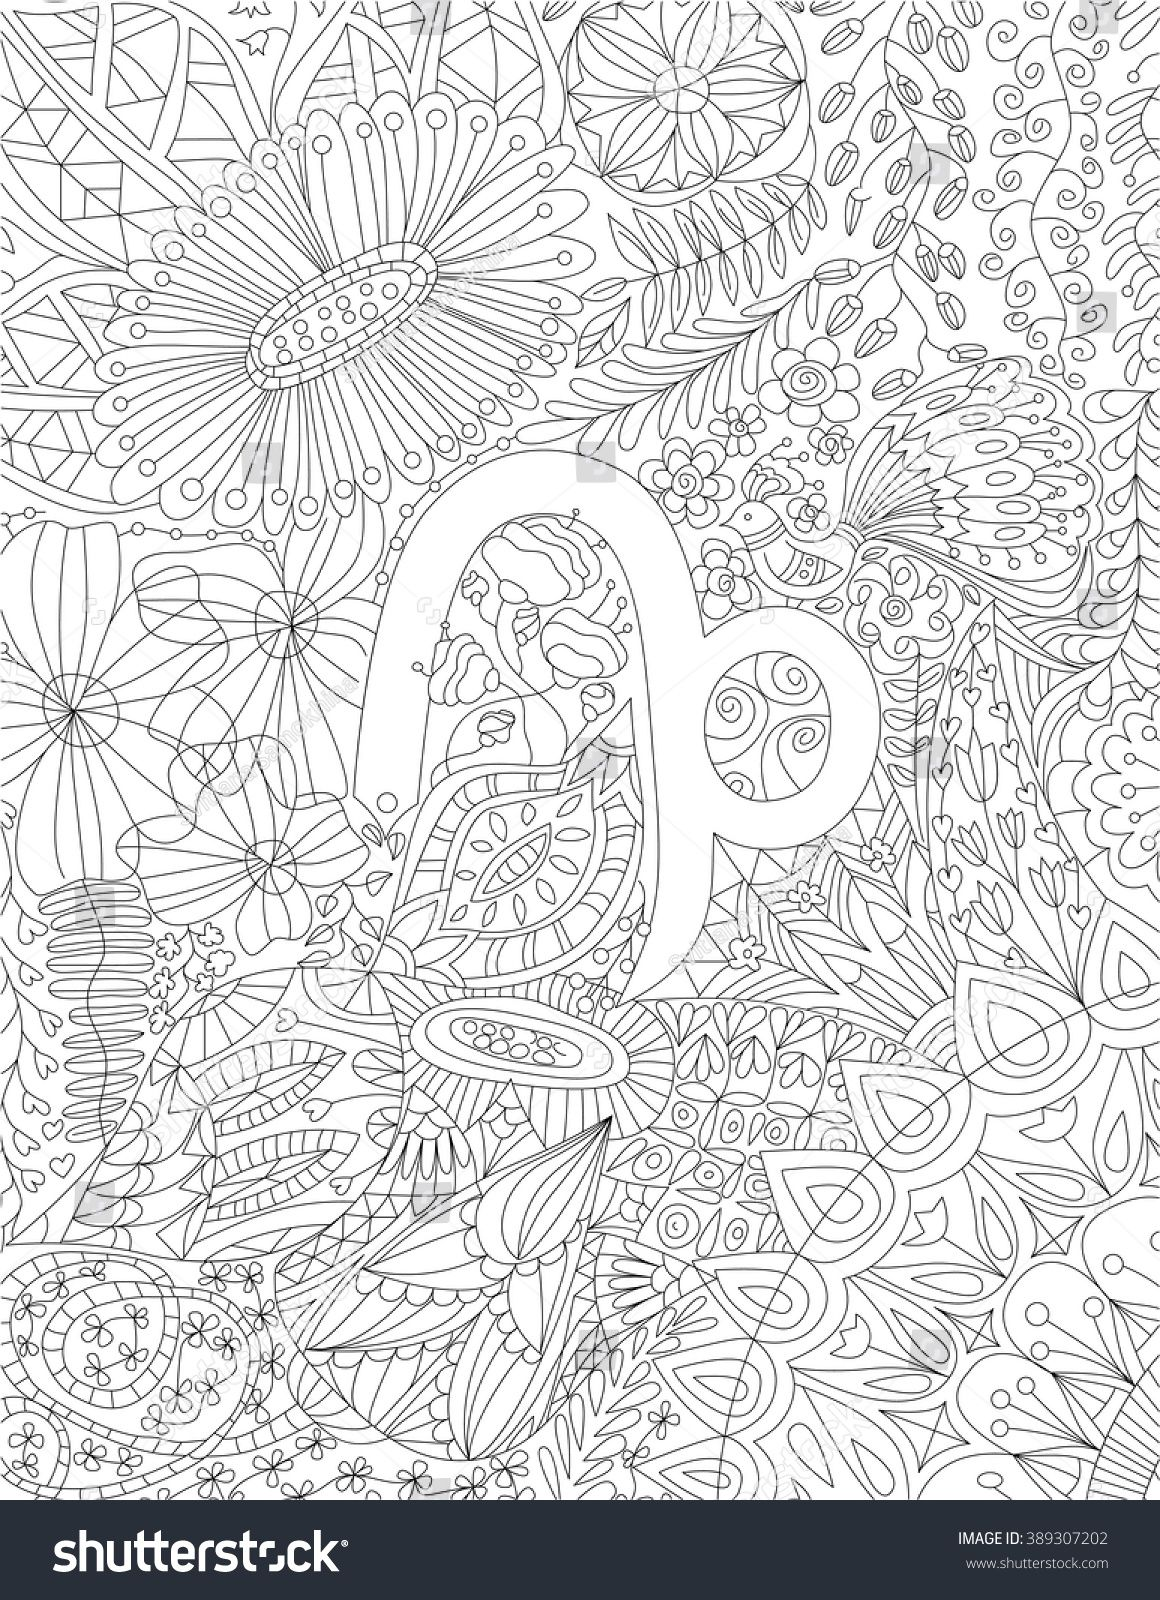 Hand Drawn Zodiac Sign Capricorn With Ethnic Floral And Geometric